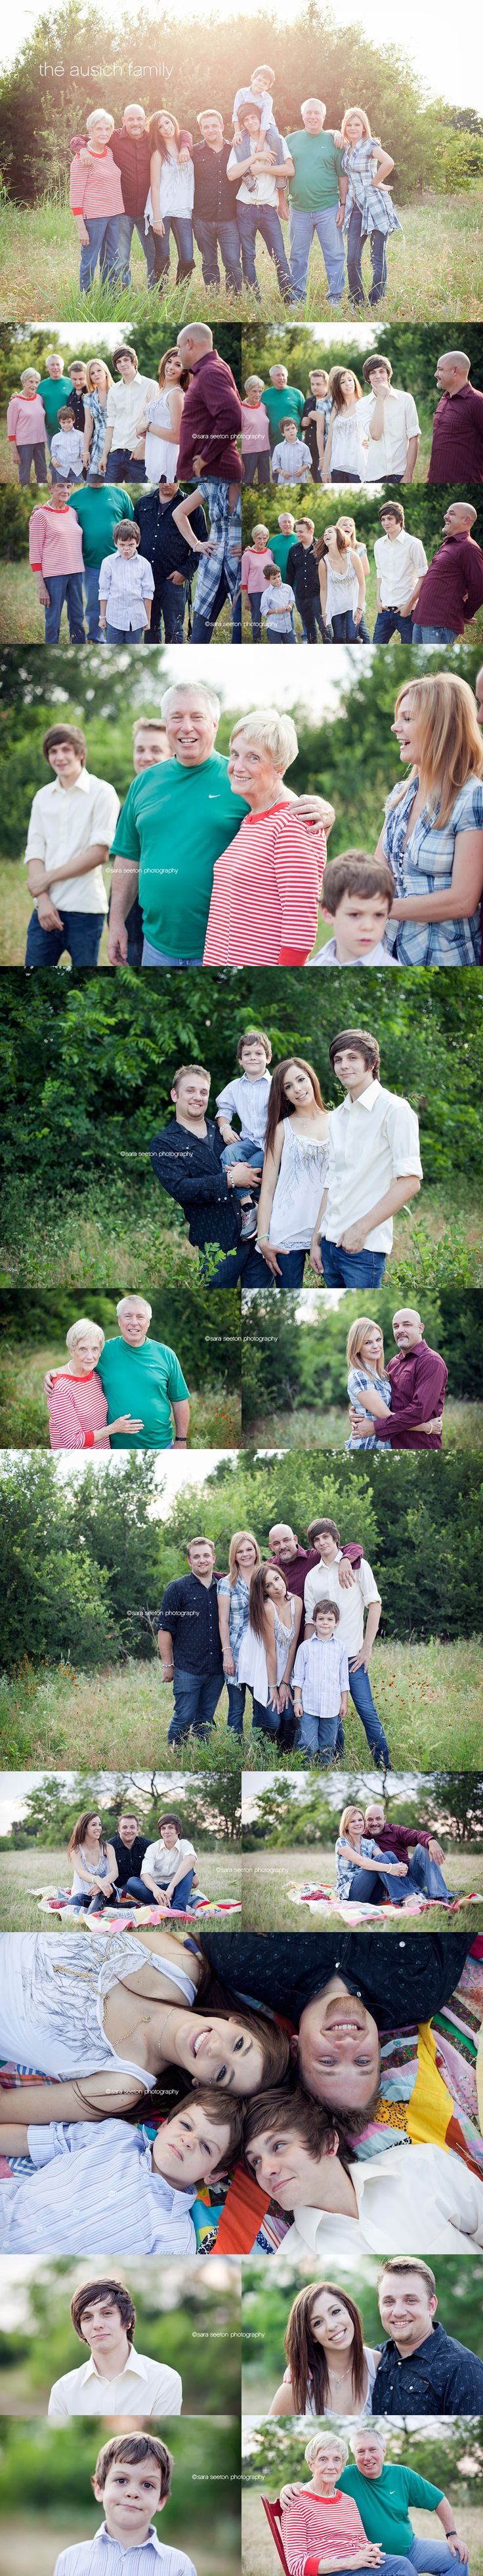 large/extended family shoot - I love the natural faces and poses; much prettier than posing.